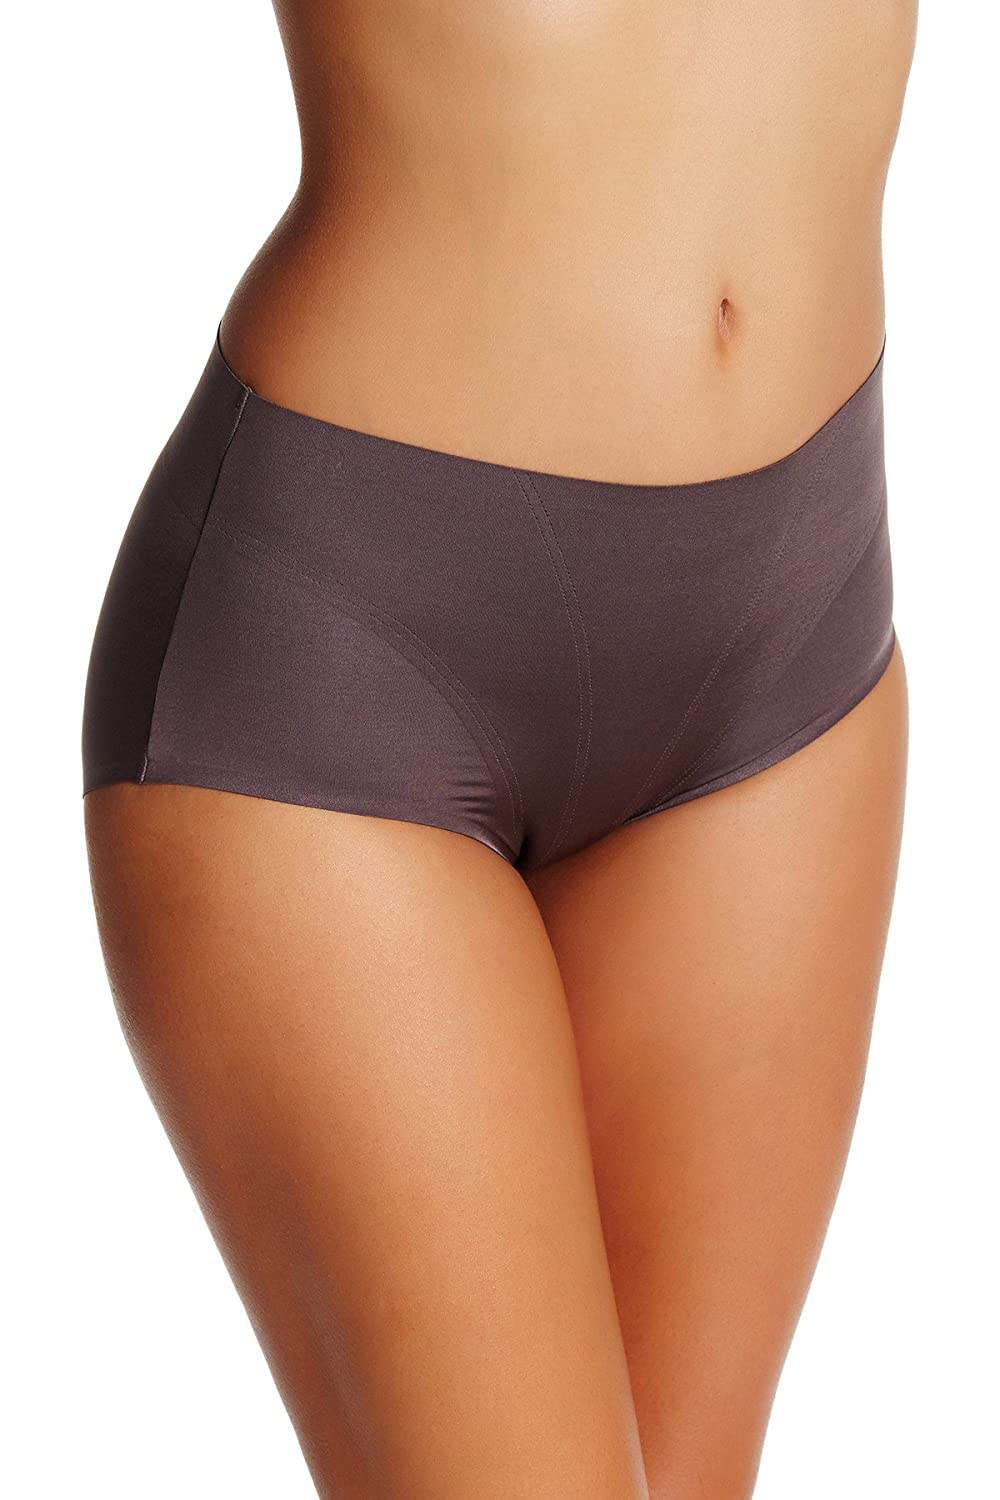 fd5ba5c99b A ruched back adds a flirty detail tot this classic brief. Go retro with  the look of this light shaping brief for a more streamlined you!